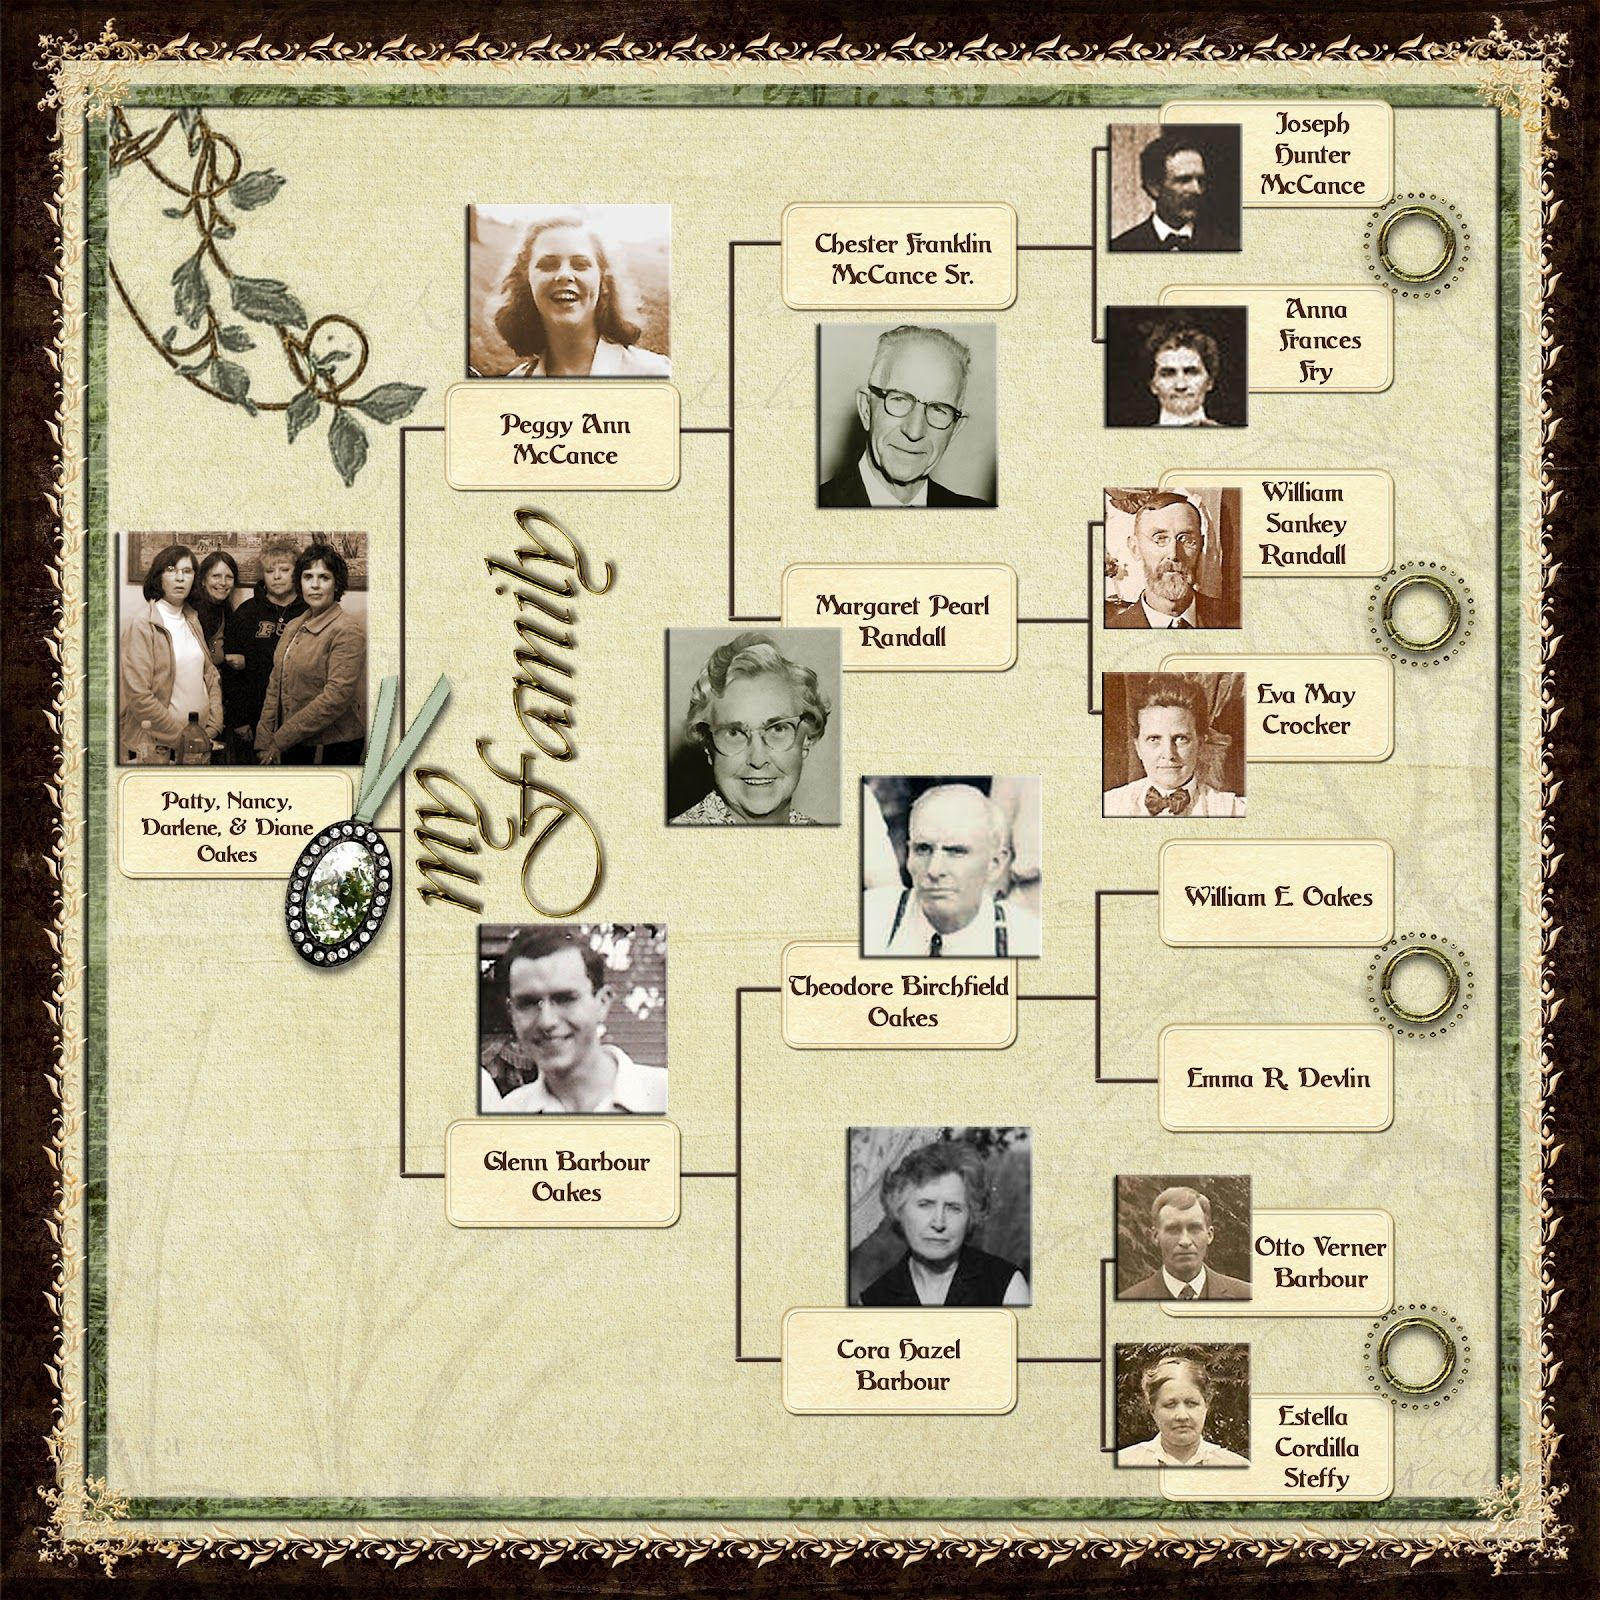 Family trees scrapbook ideas google search scrapbook family treasures pinterest family - Scrapbooking idees pages ...